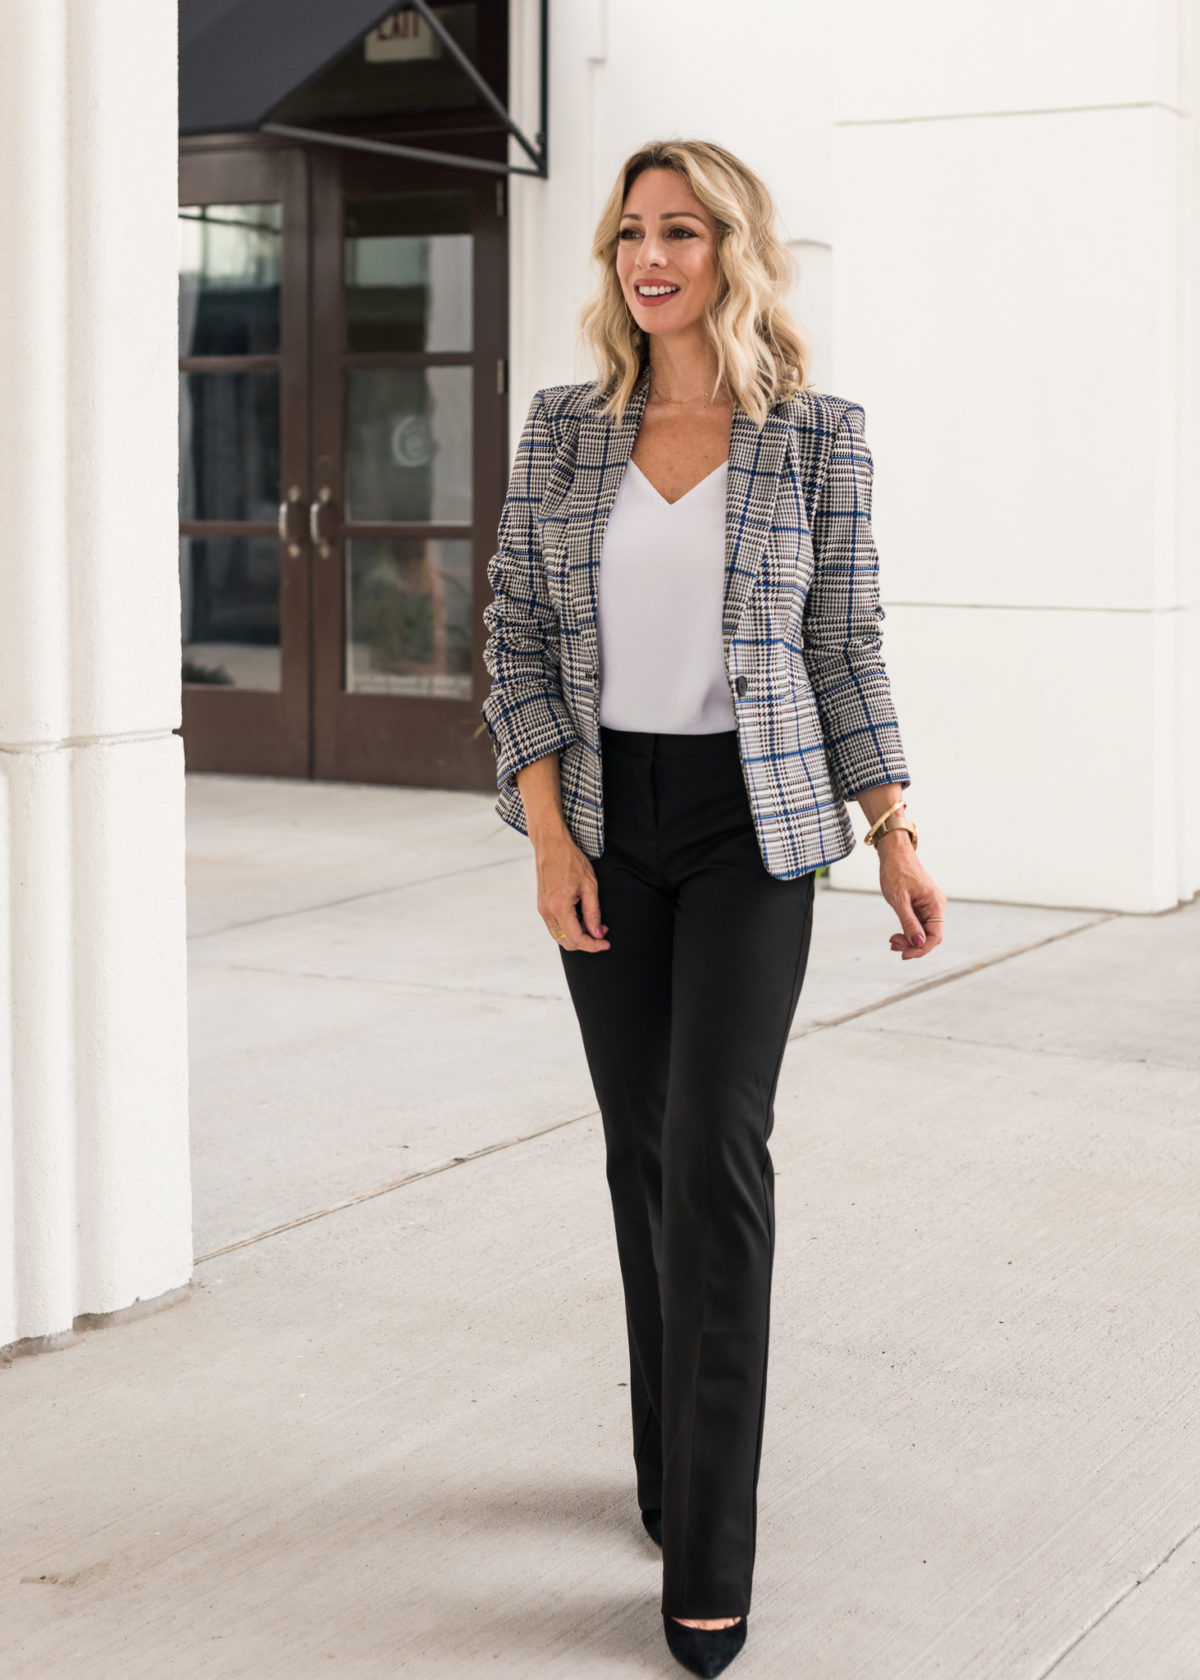 work outfit - plaid blazer and black pants